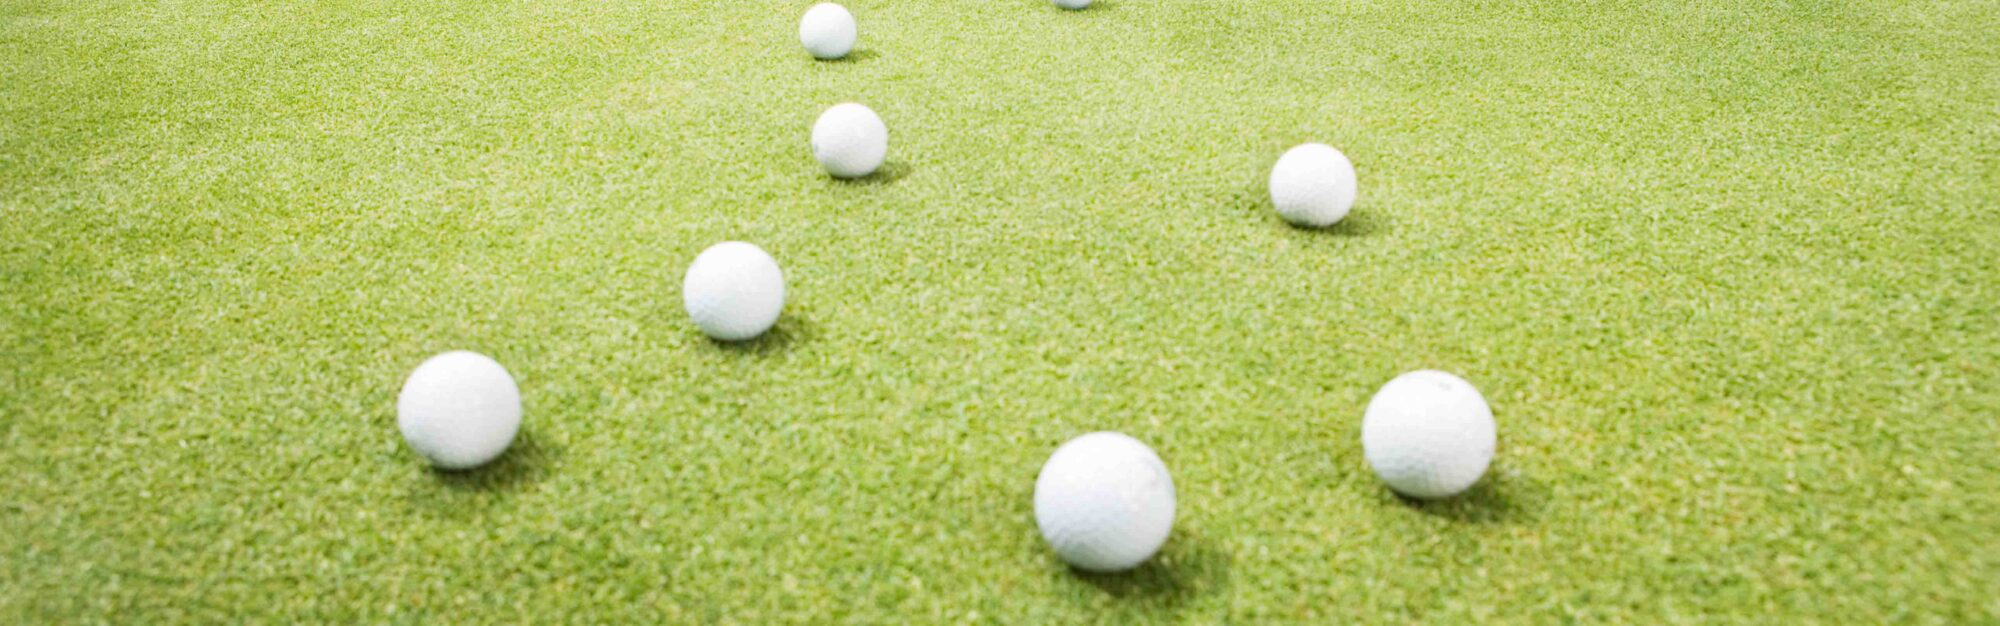 Rules of Golf explained: My putt has hit another ball on the green – is there a penalty?